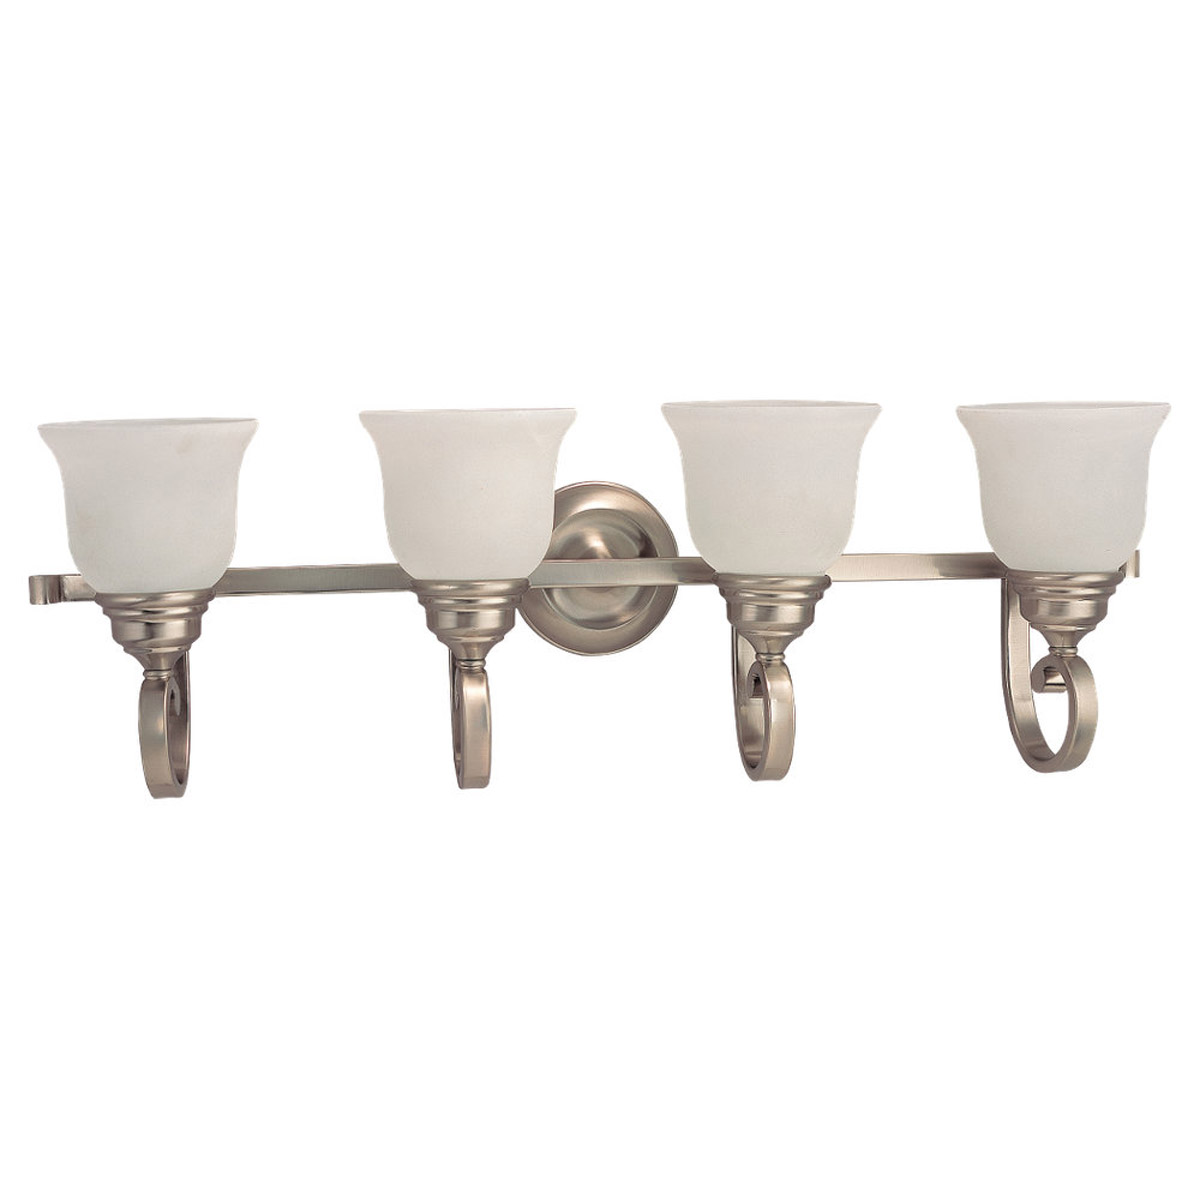 Sea Gull Lighting Serenity 4 Light Bath Vanity in Brushed Nickel 49061BLE-962